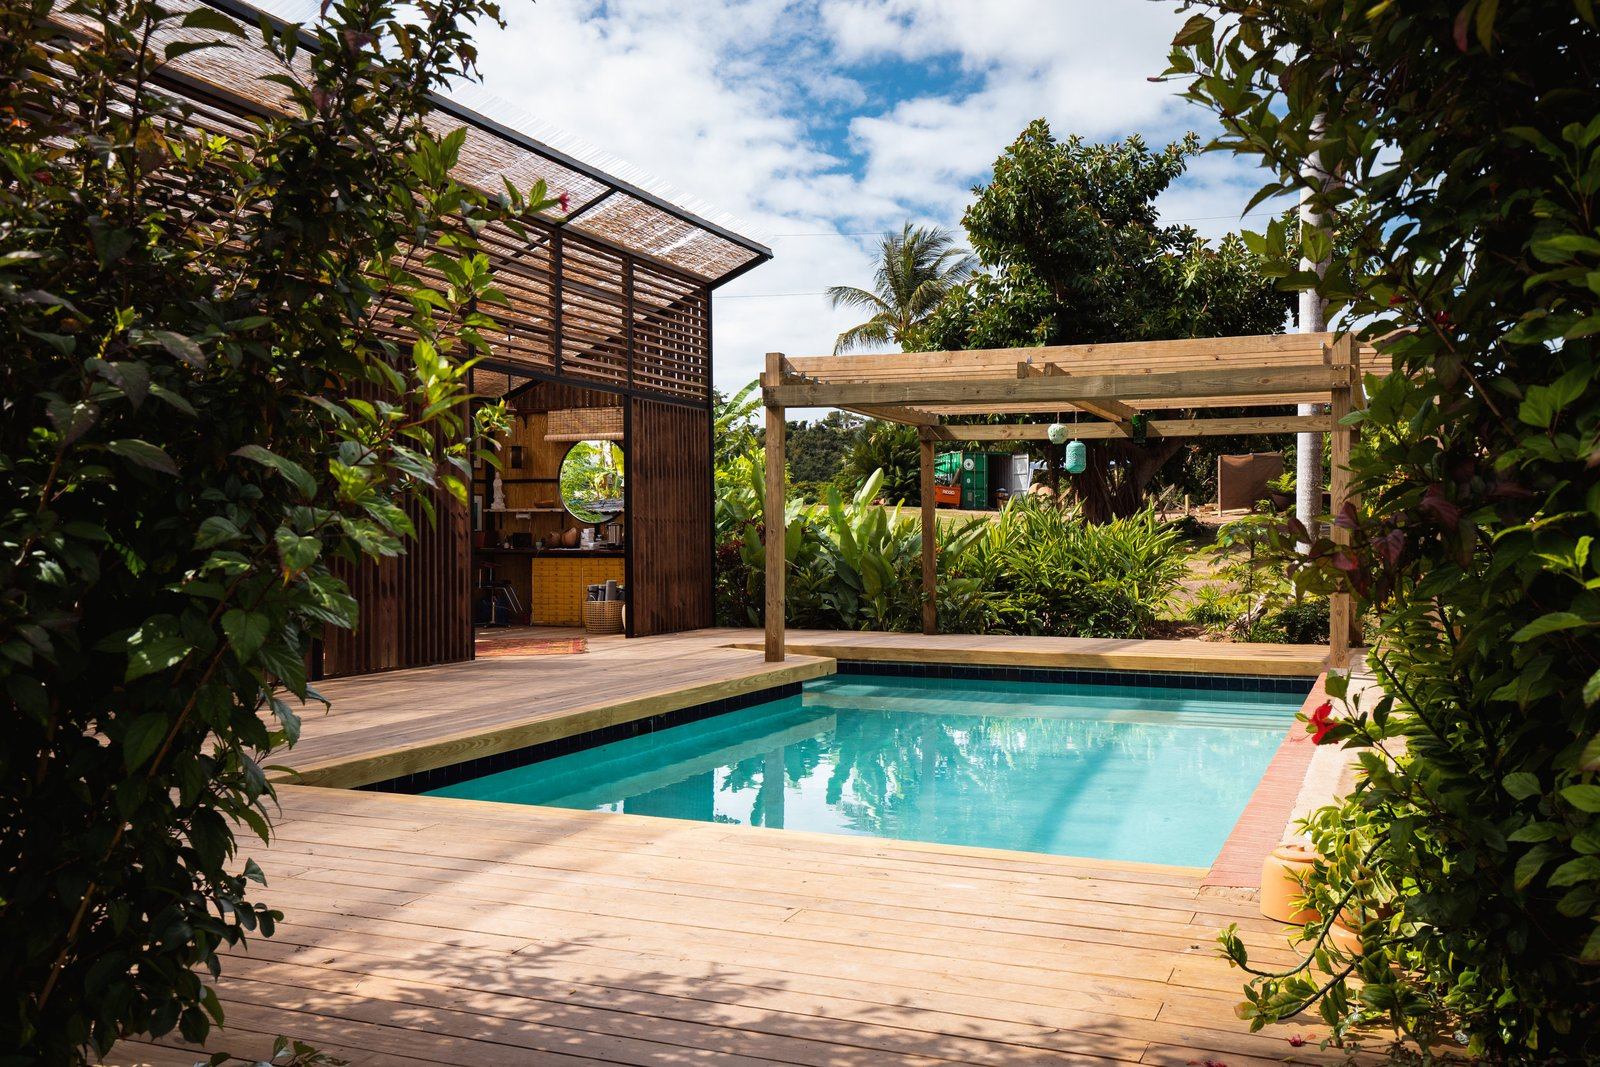 Outdoor, Wood Patio, Porch, Deck, Shrubs, and Swimming Pools, Tubs, Shower  La Finca Victoria